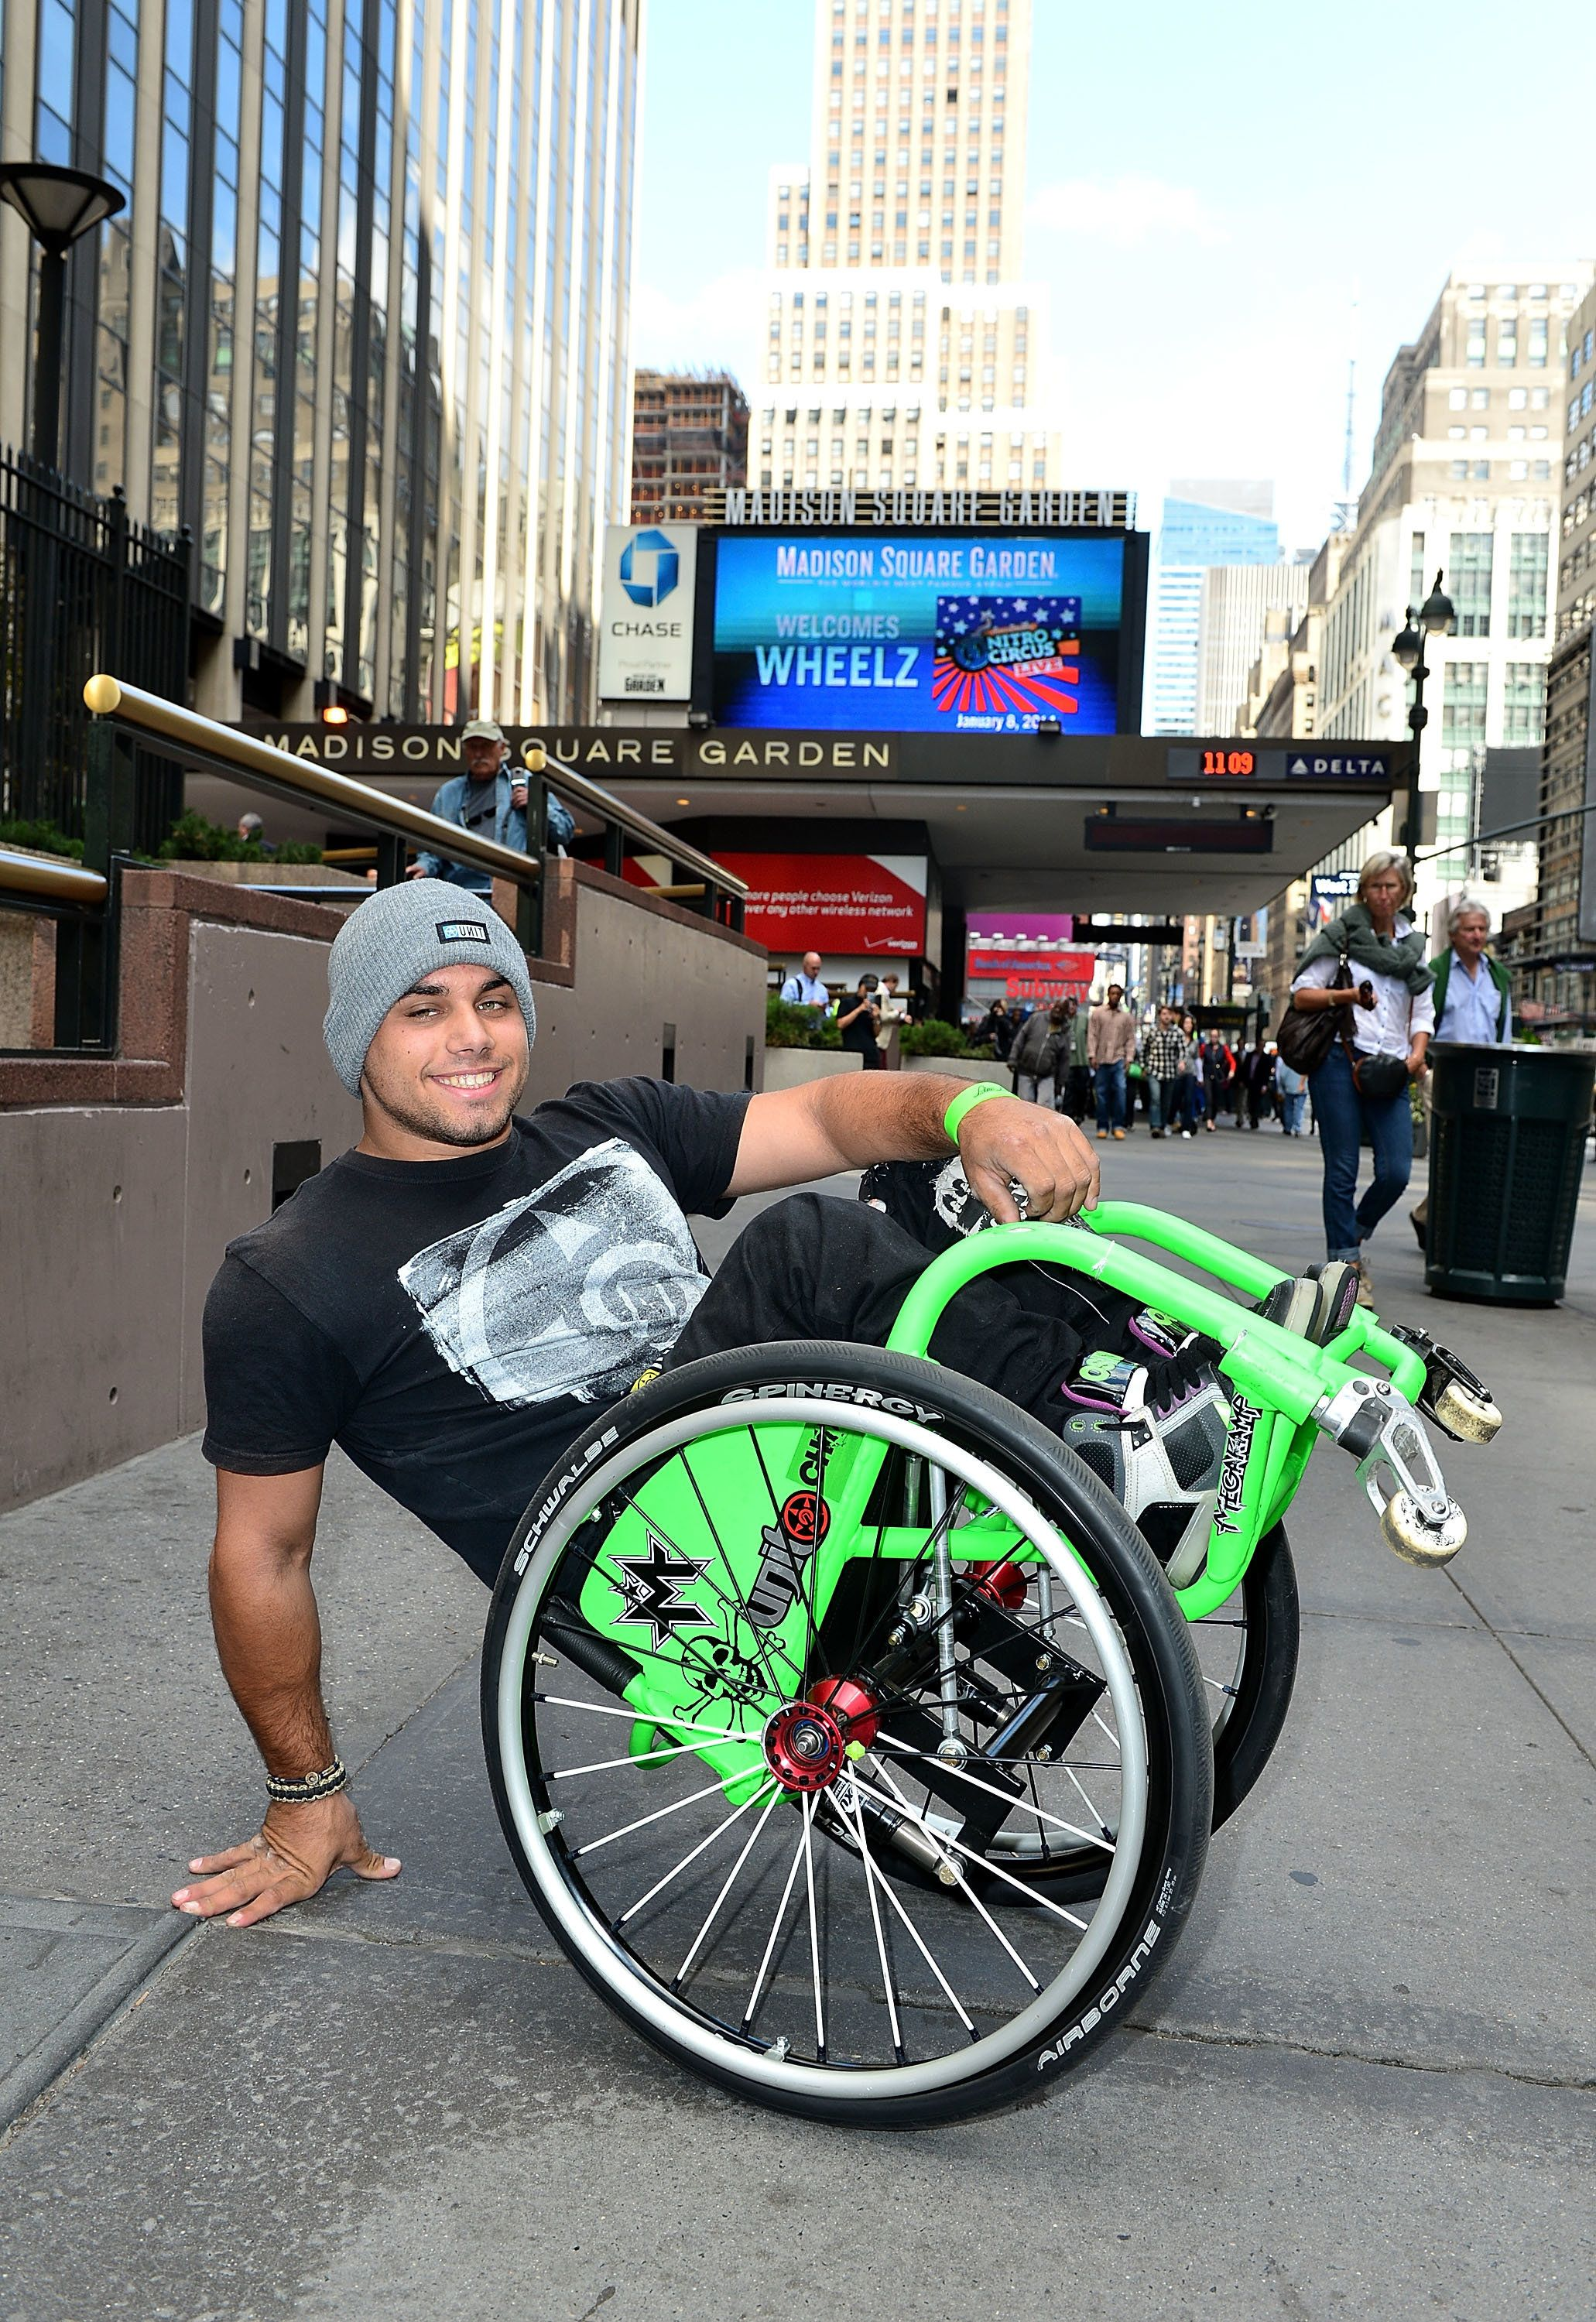 NEW YORK, NY - SEPTEMBER 26:  Extreme wheelchair athlete Aaron 'Wheelz' Fotheringham poses for photos outside Madison Square Garden on September 26, 2013 in New York City to promote Nitro Circus Live kick off on January 8, 2014 at Madsion Square Garden.  (Photo by James Devaney/Getty Images)